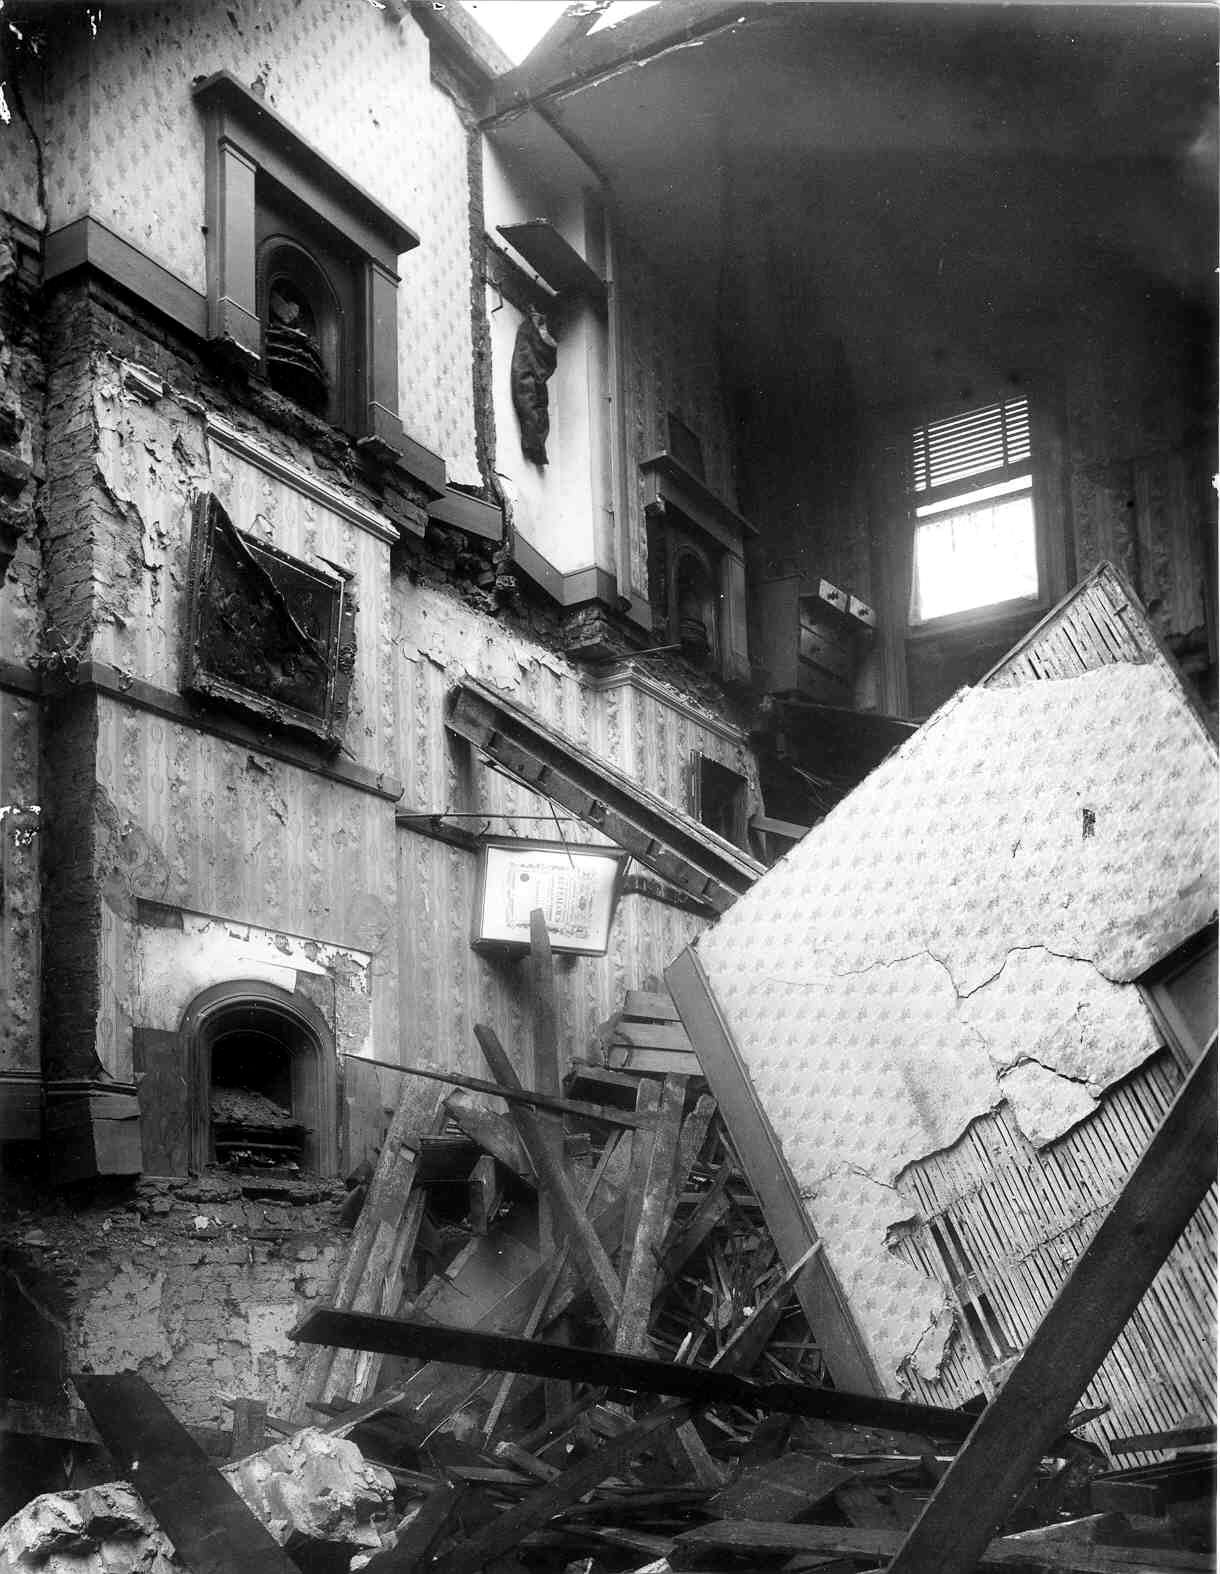 Damage done by Zeppelin raid 23 Sep 1916 to interior of the Black Swan public house, Bow Road